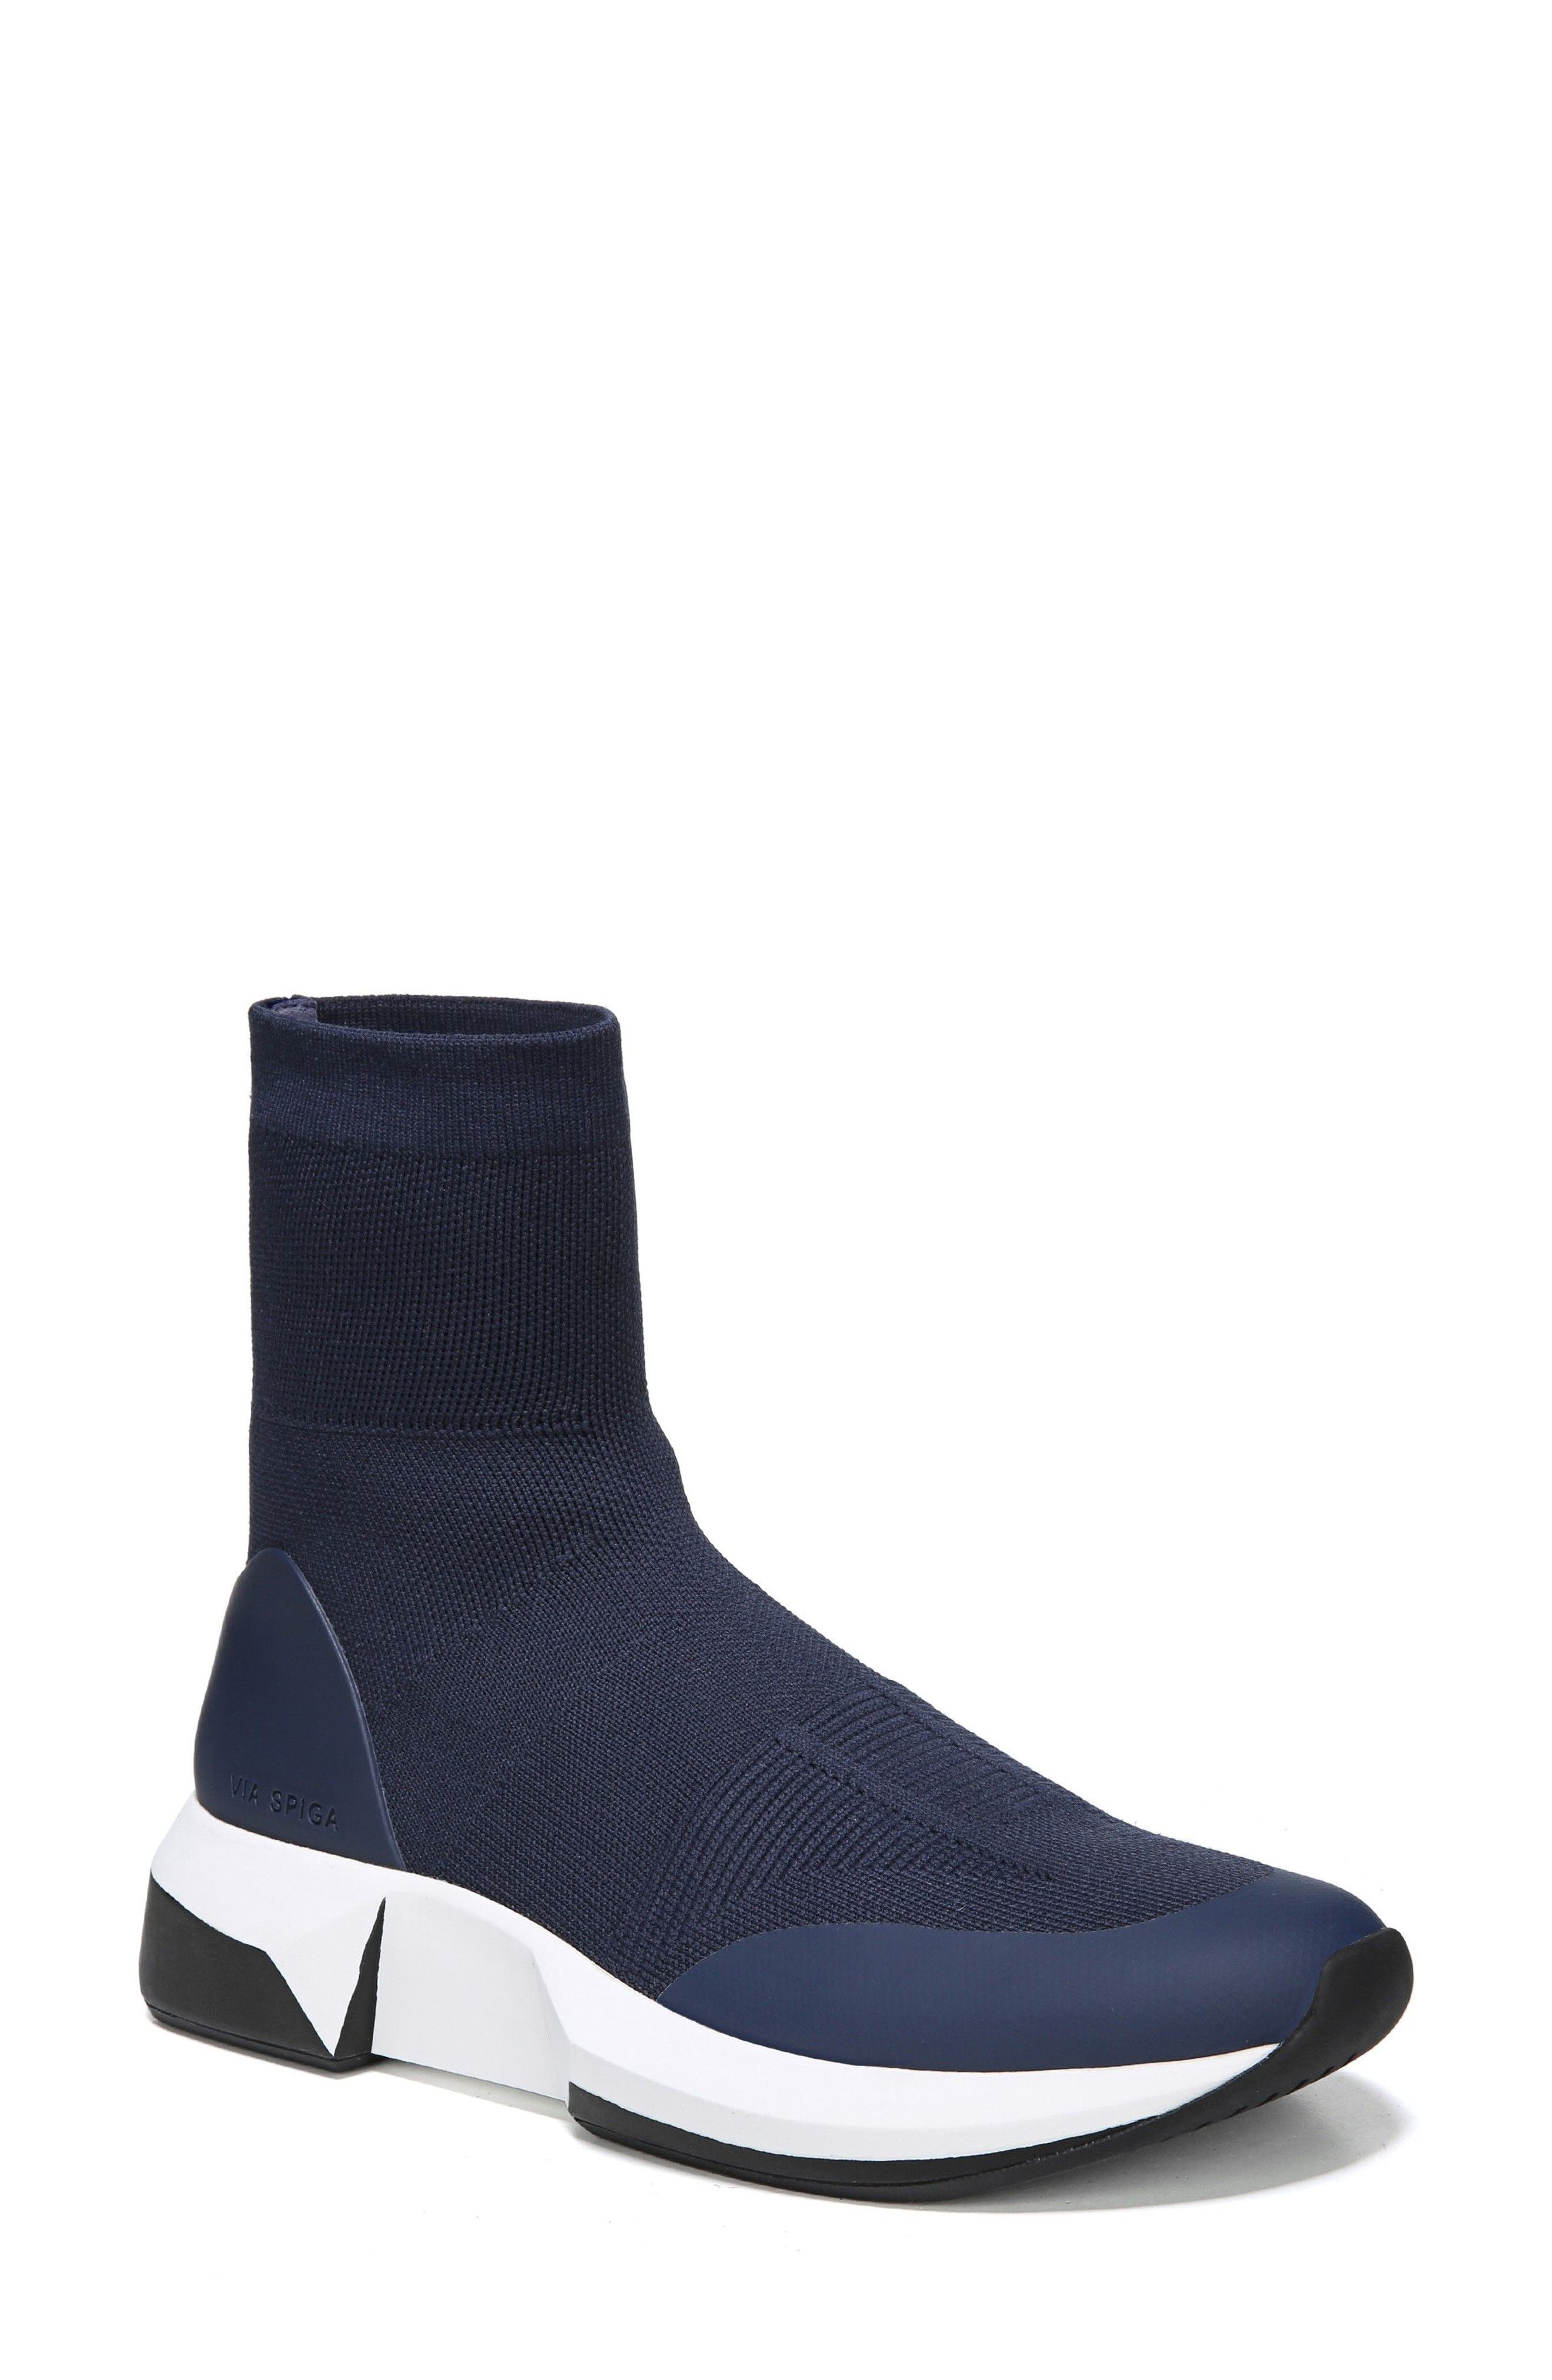 Verion High Top Sock Sneaker,                             Main thumbnail 1, color,                             Sapphire Fabric